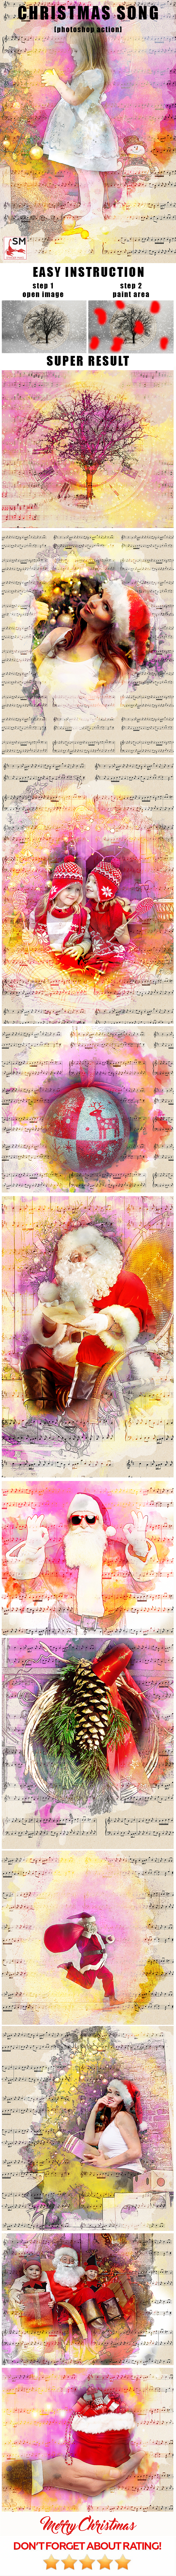 GraphicRiver Christmas Song Photoshop Action 21141296